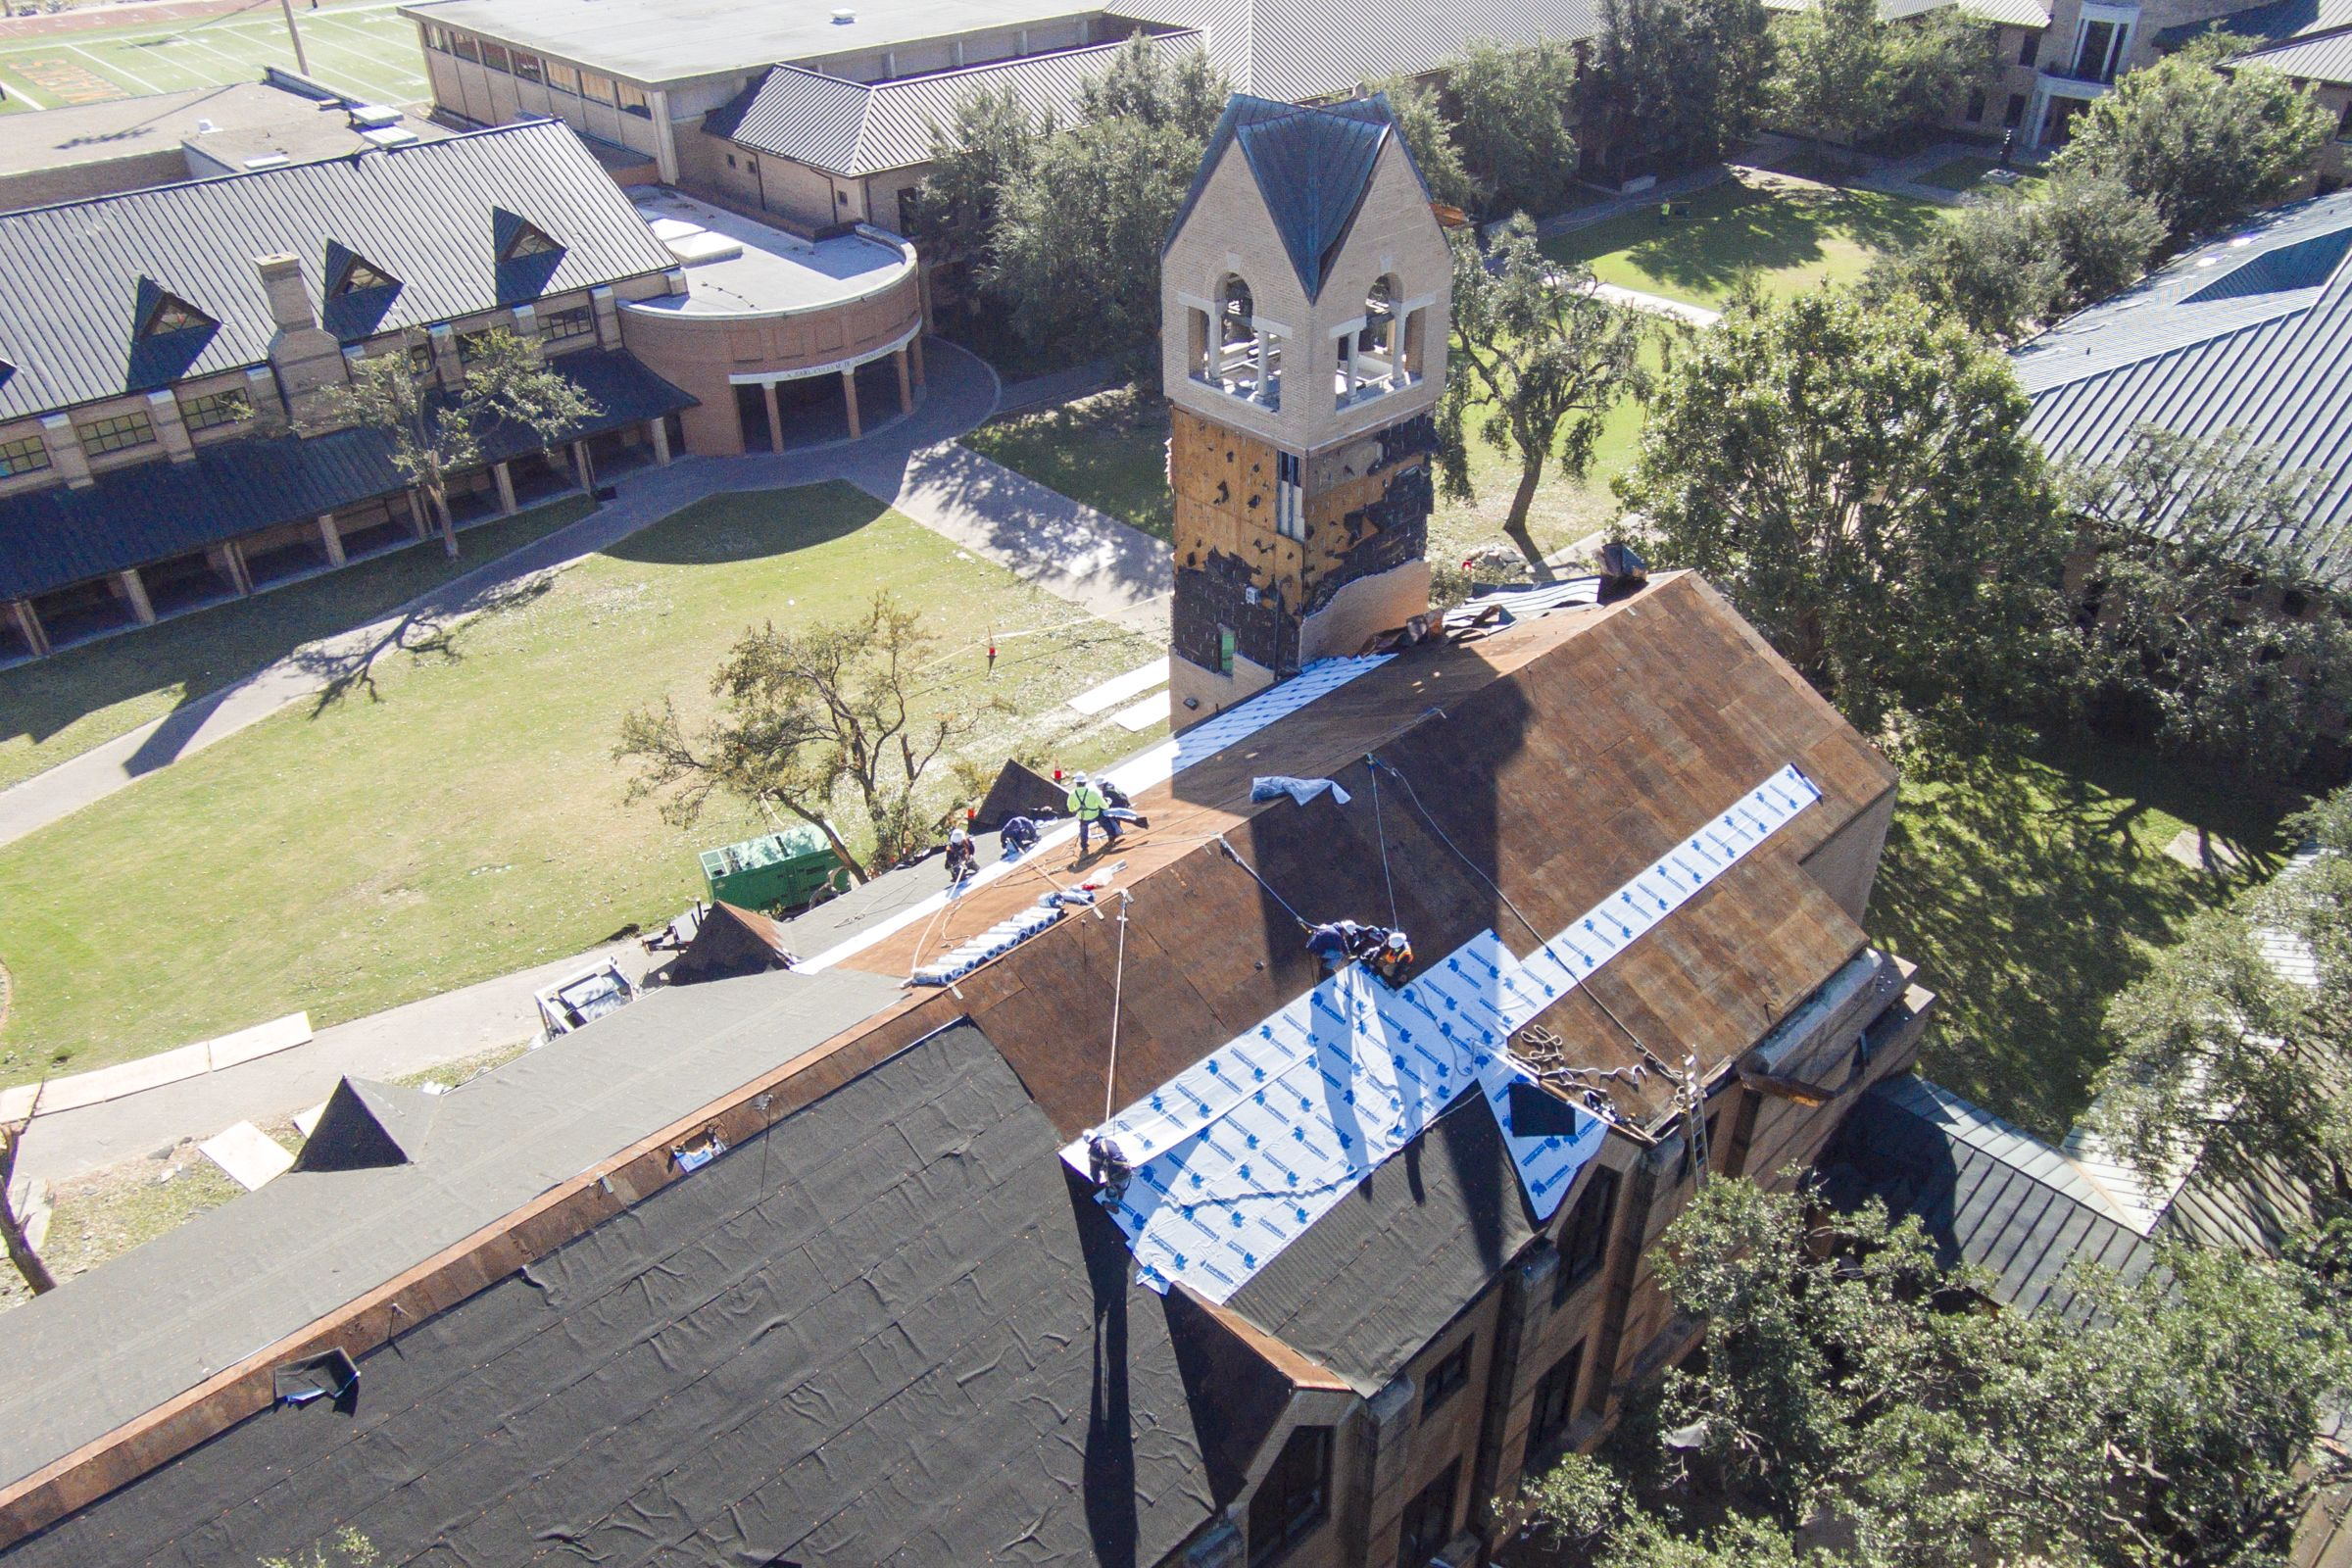 Crews begin repairing the Chapel roof and bell tower.